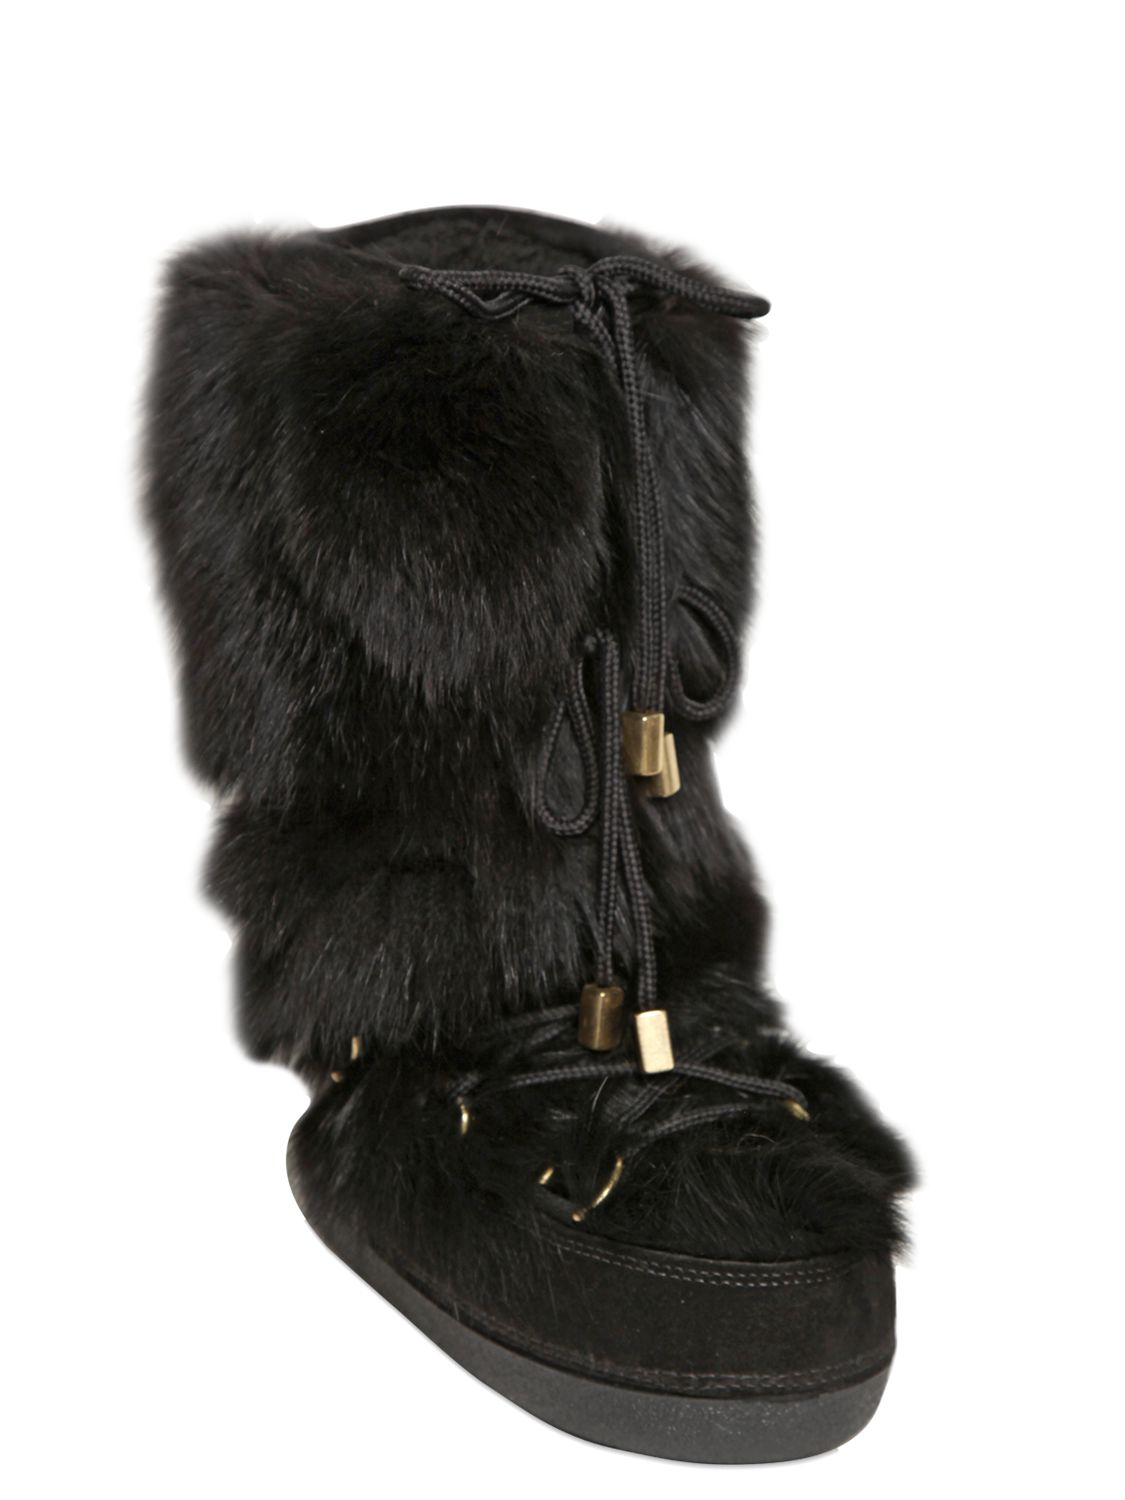 The black acrylic and polyester blend faux fur boot covers will complete any monster outfit, whether she wants to be a wolf man (wolf girl?) or a Big Foot (Little Foot?). Just be sure to keep a wary eye on your bowls of candy for the sake of everyone.